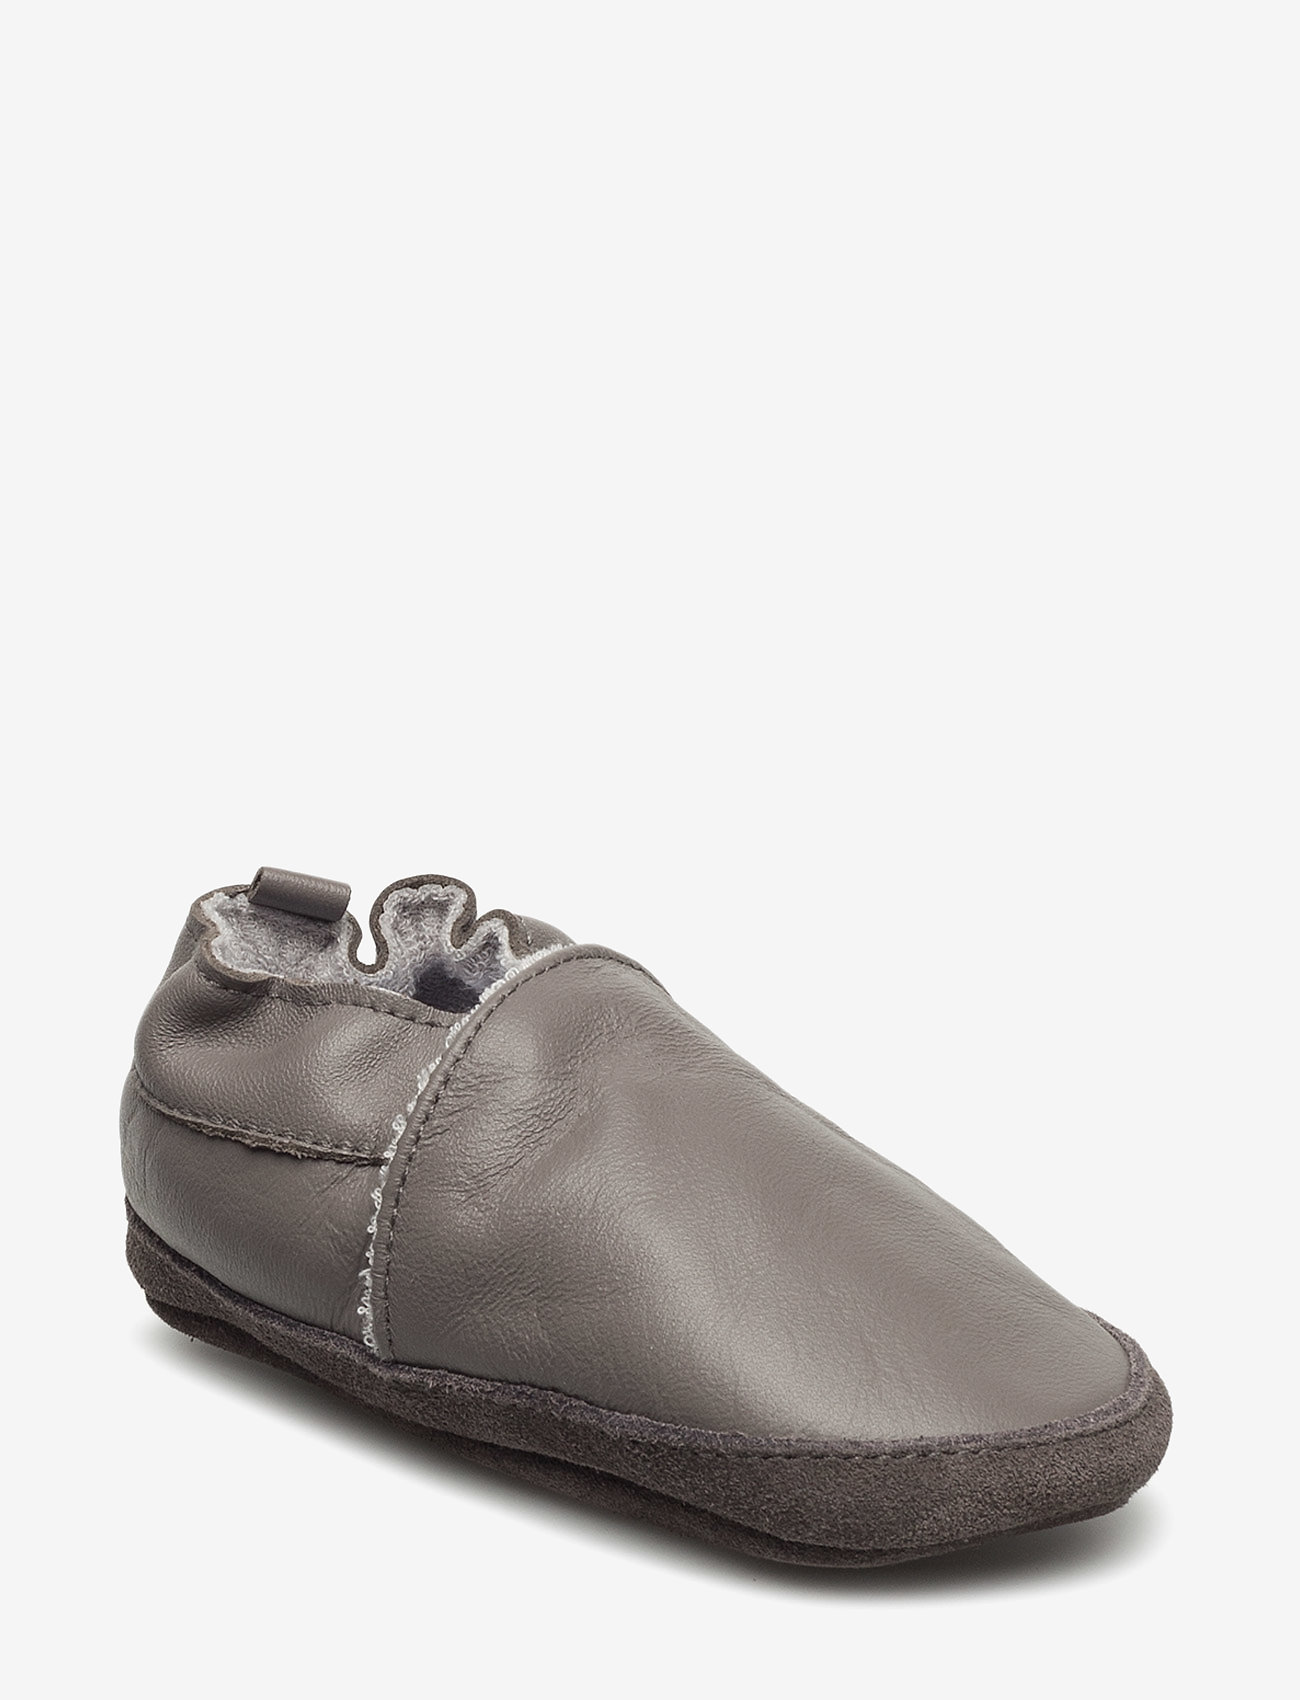 Melton - Leather shoe - Loafer - hausschuhe - 150/darkgrey - 0